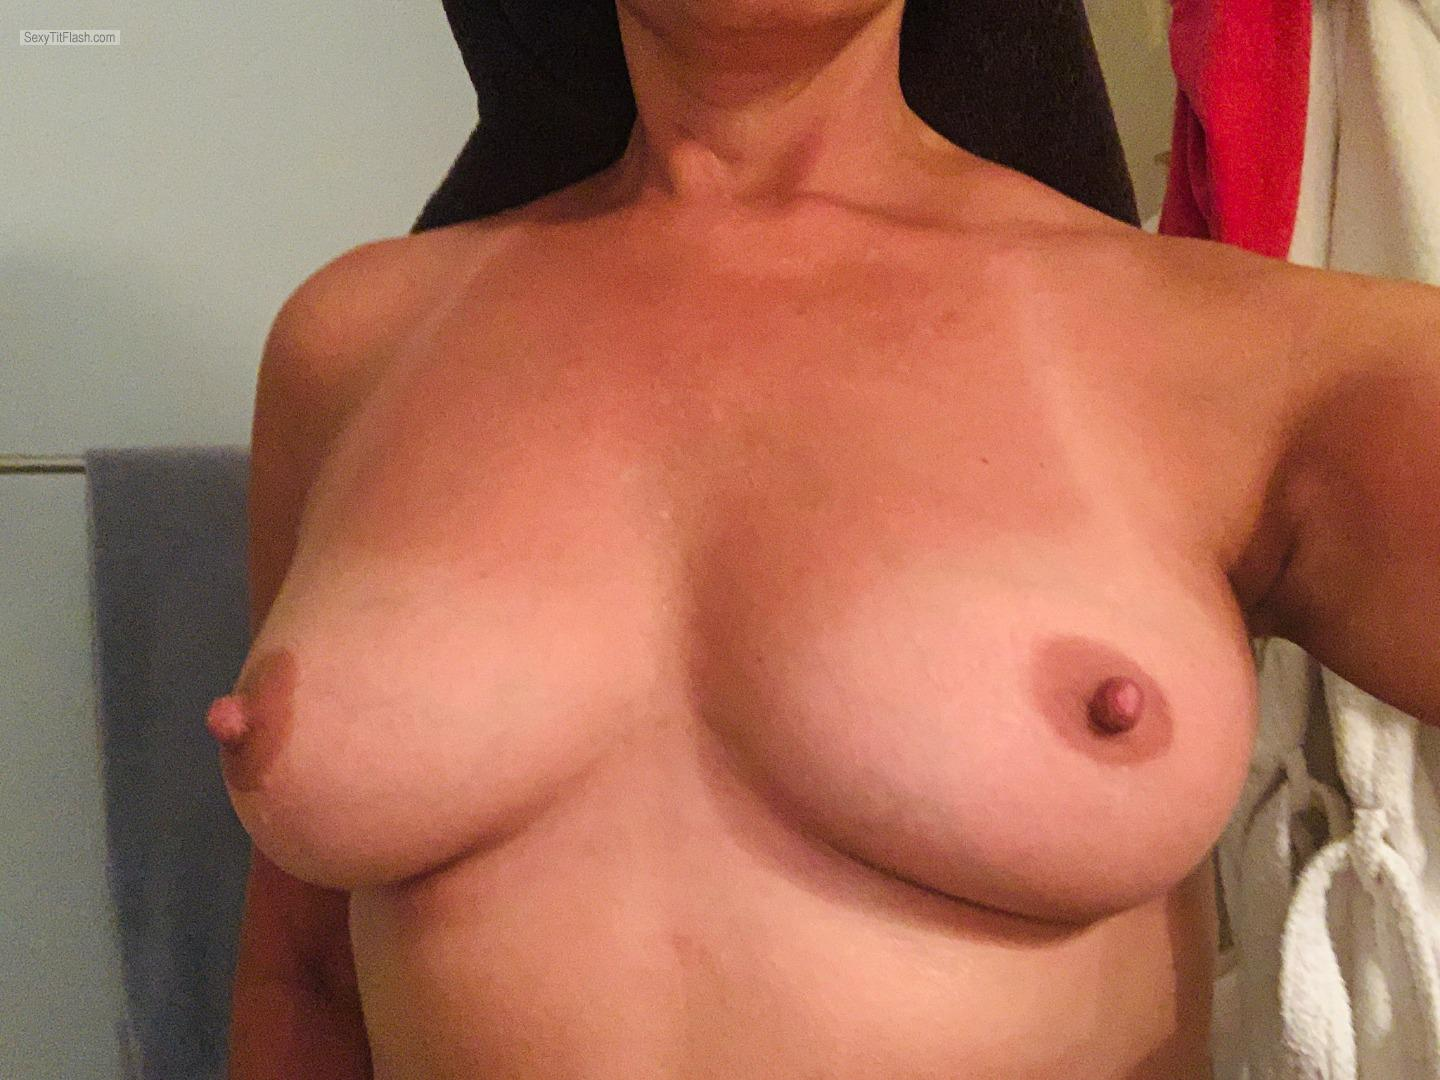 Tit Flash: Wife's Medium Tits - Hot Housewife from United States